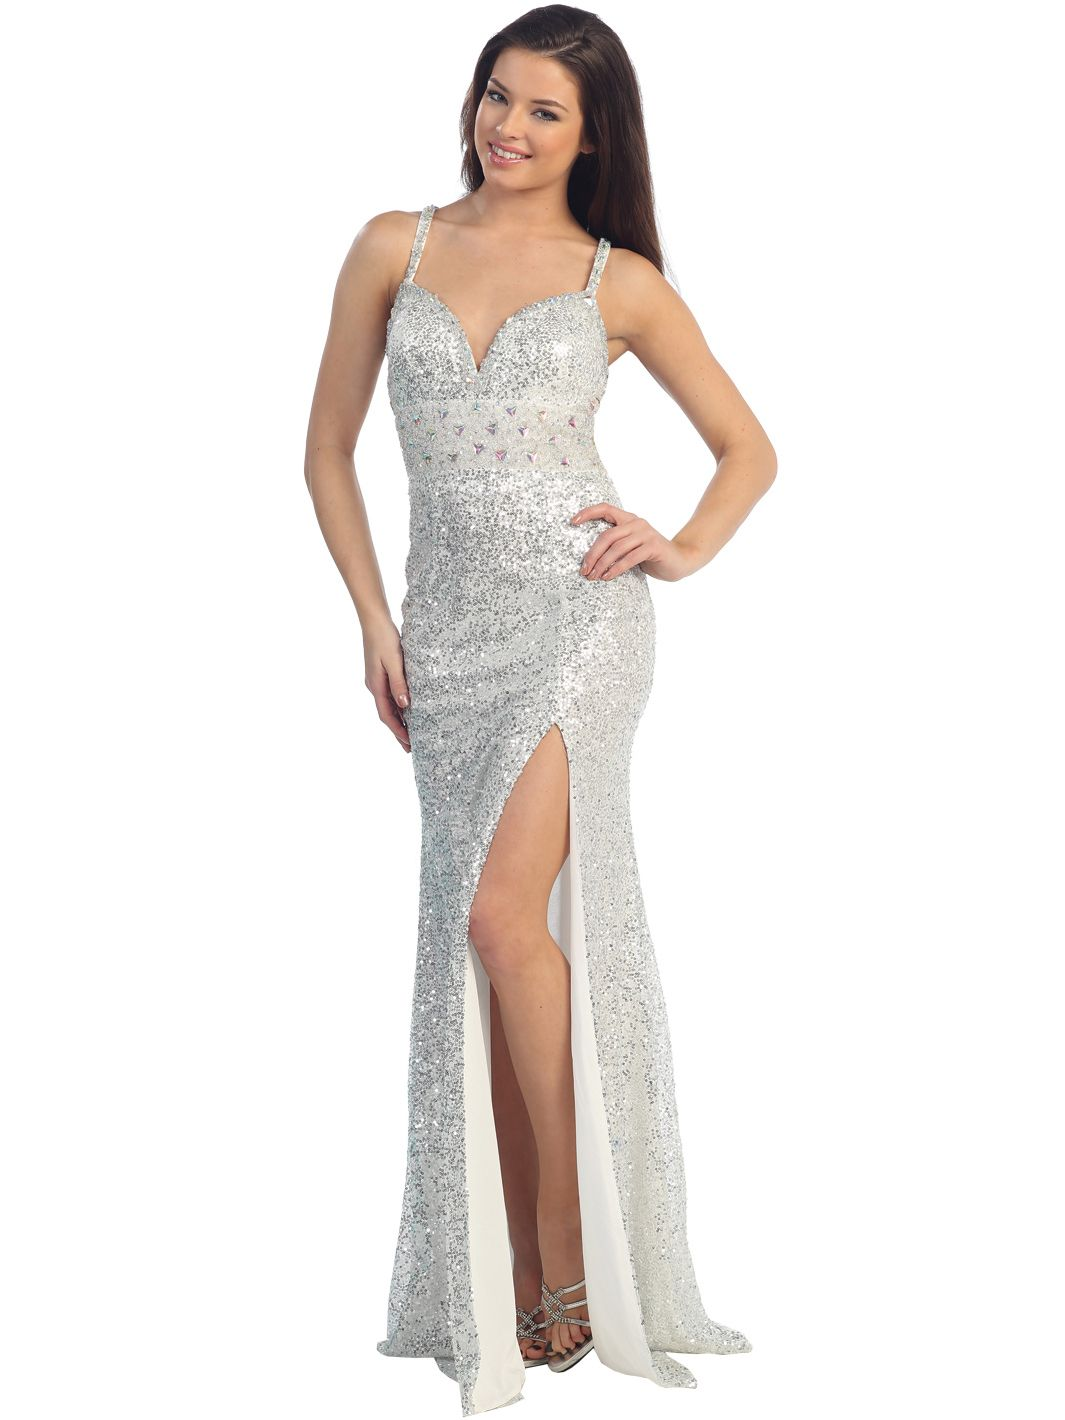 Collection White And Silver Dresses Pictures - Reikian